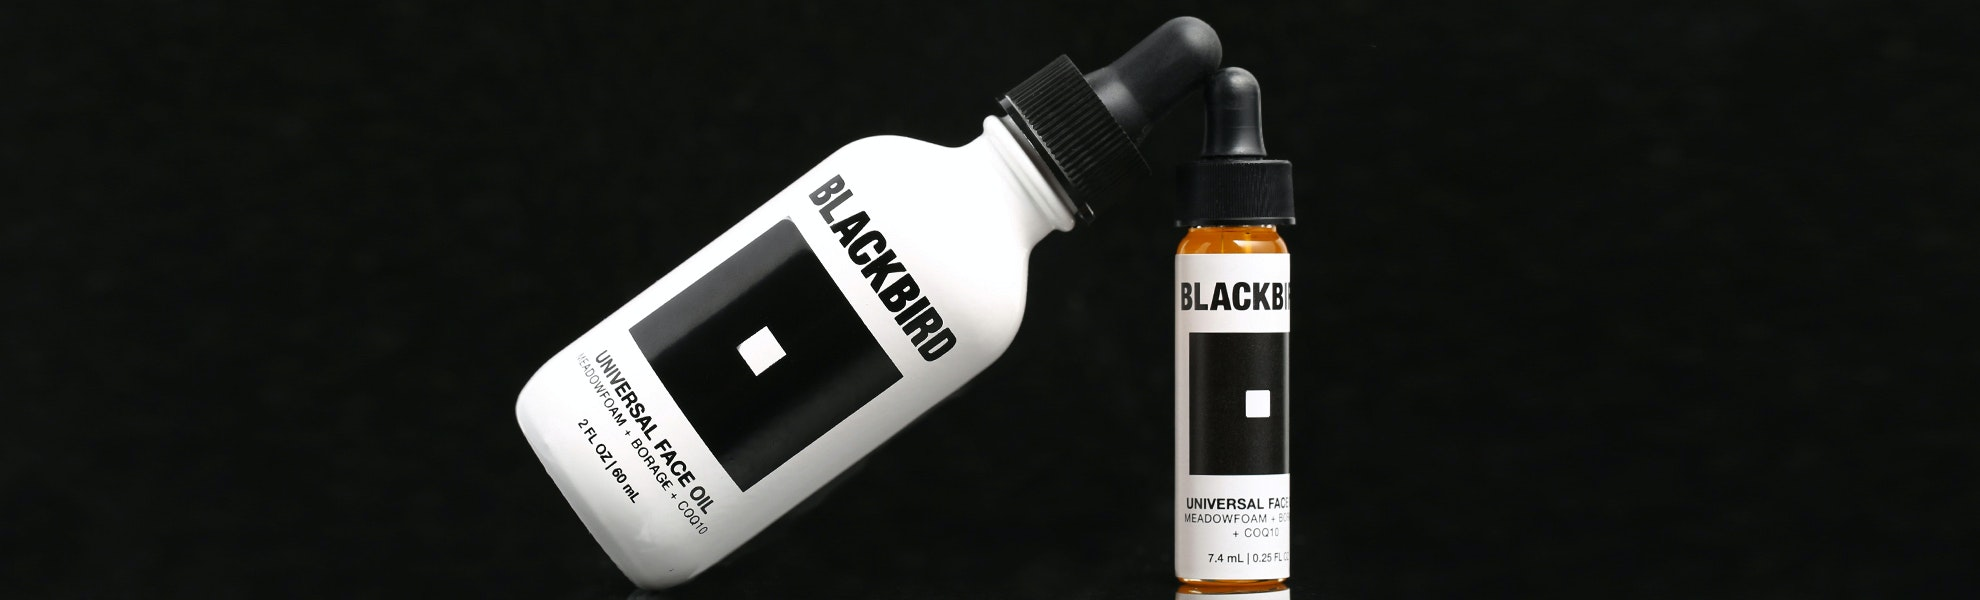 Blackbird Universal Face Oil